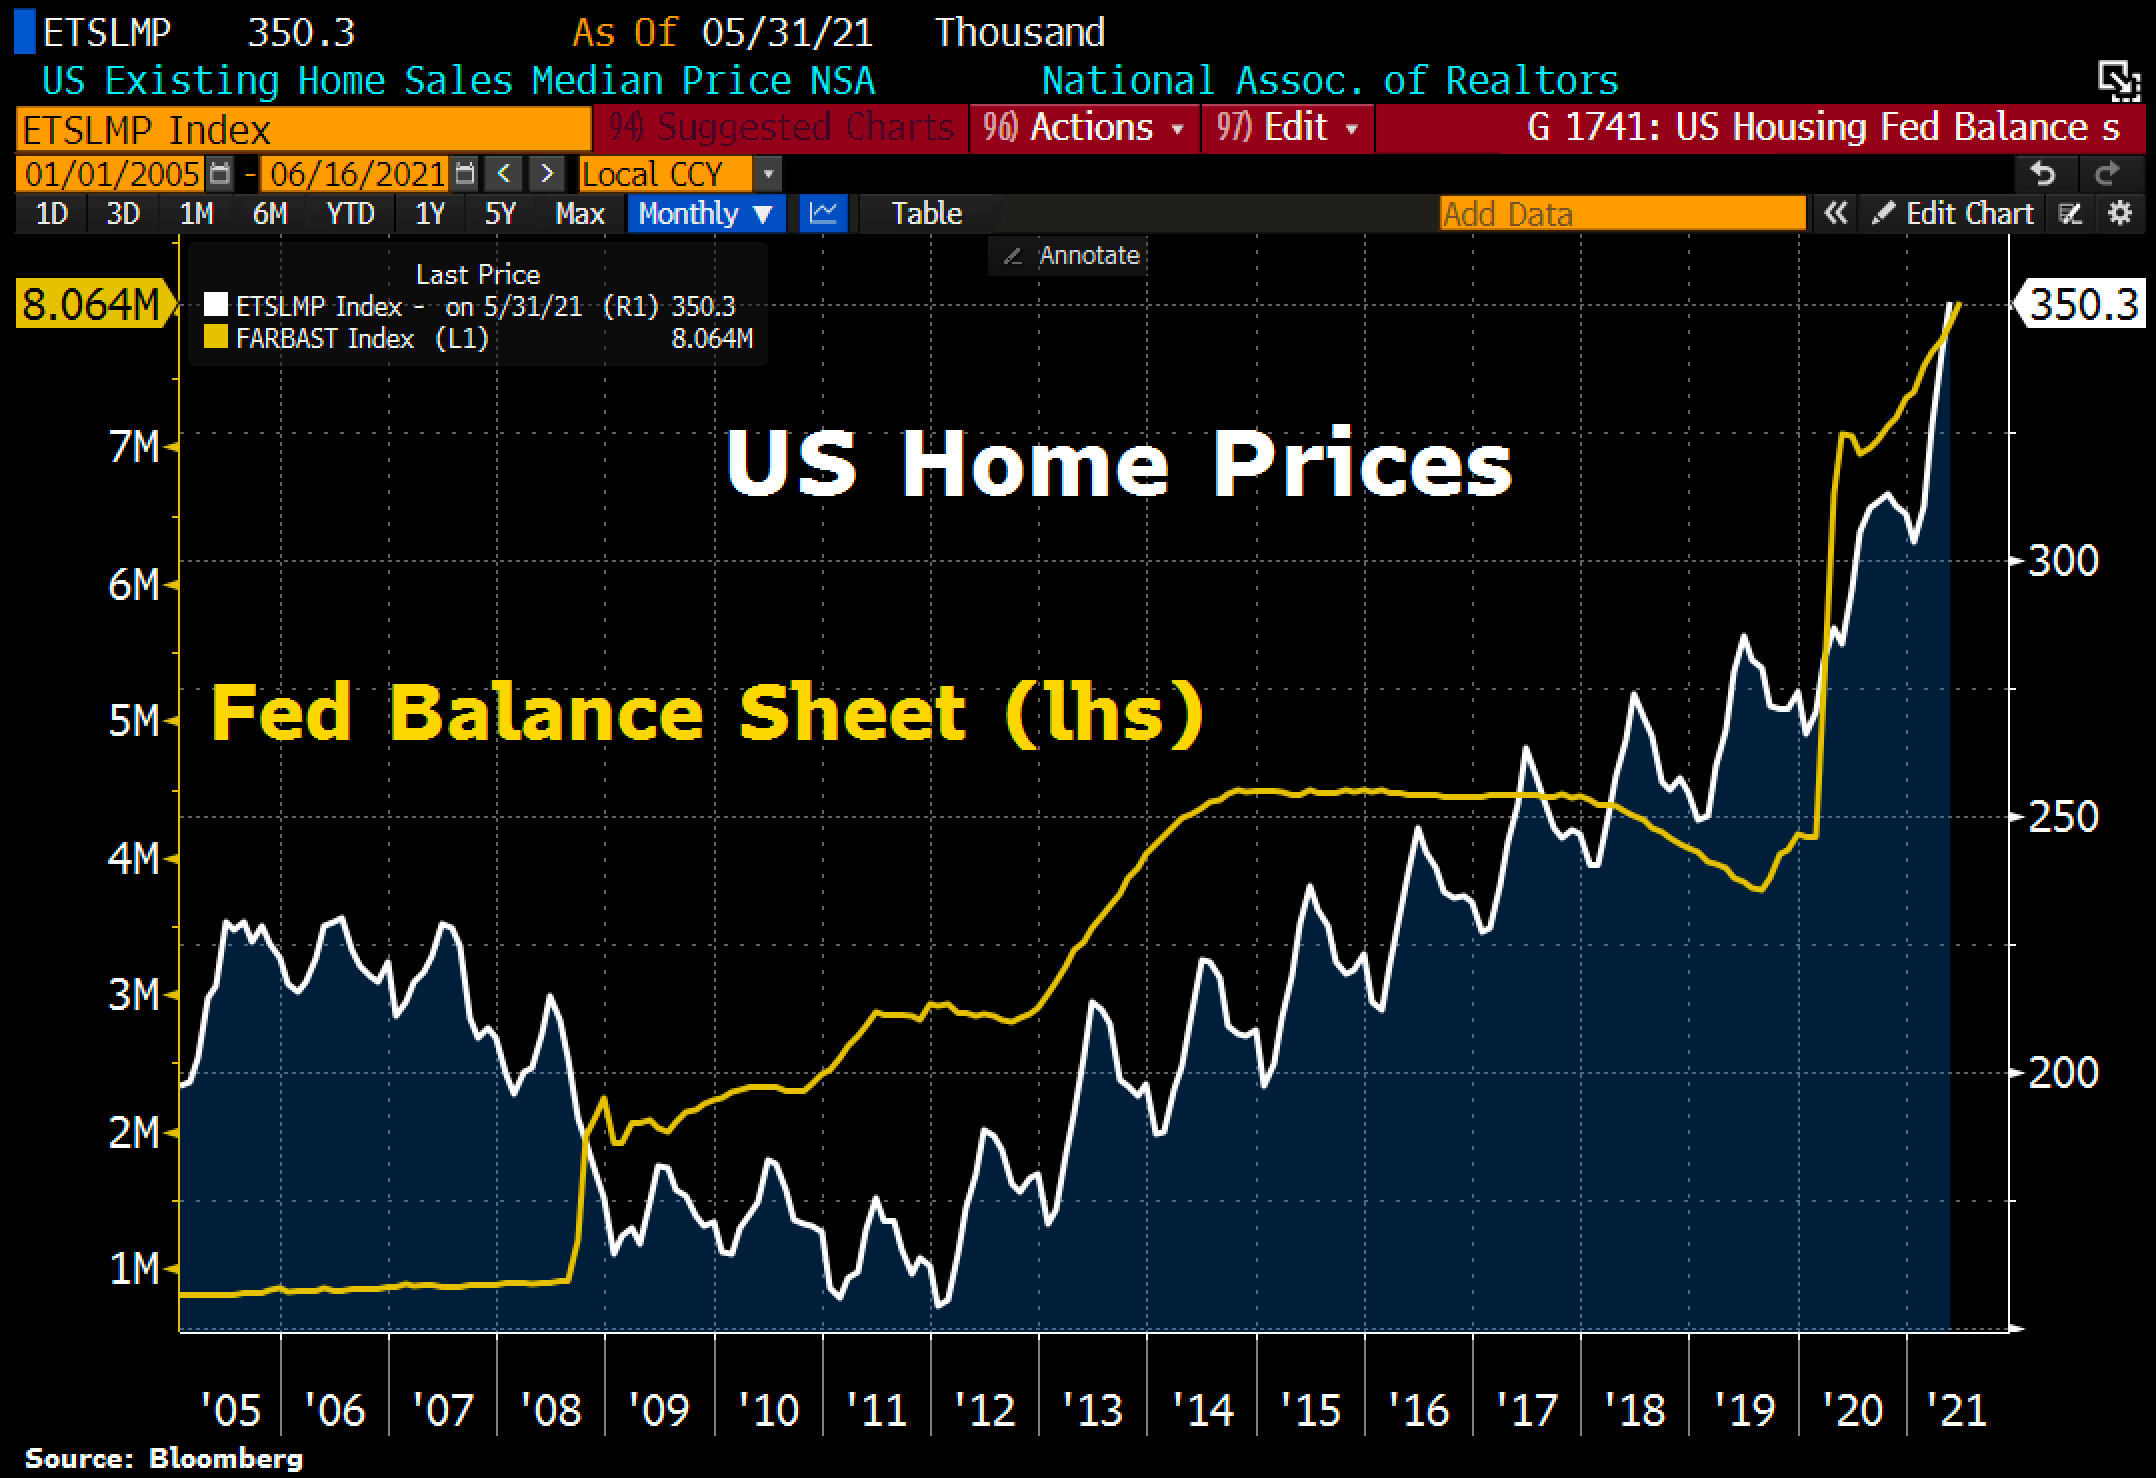 FED Balance sheet & US Home Prices as of June 23rd, 2021.Source: Holger Zschaepitz